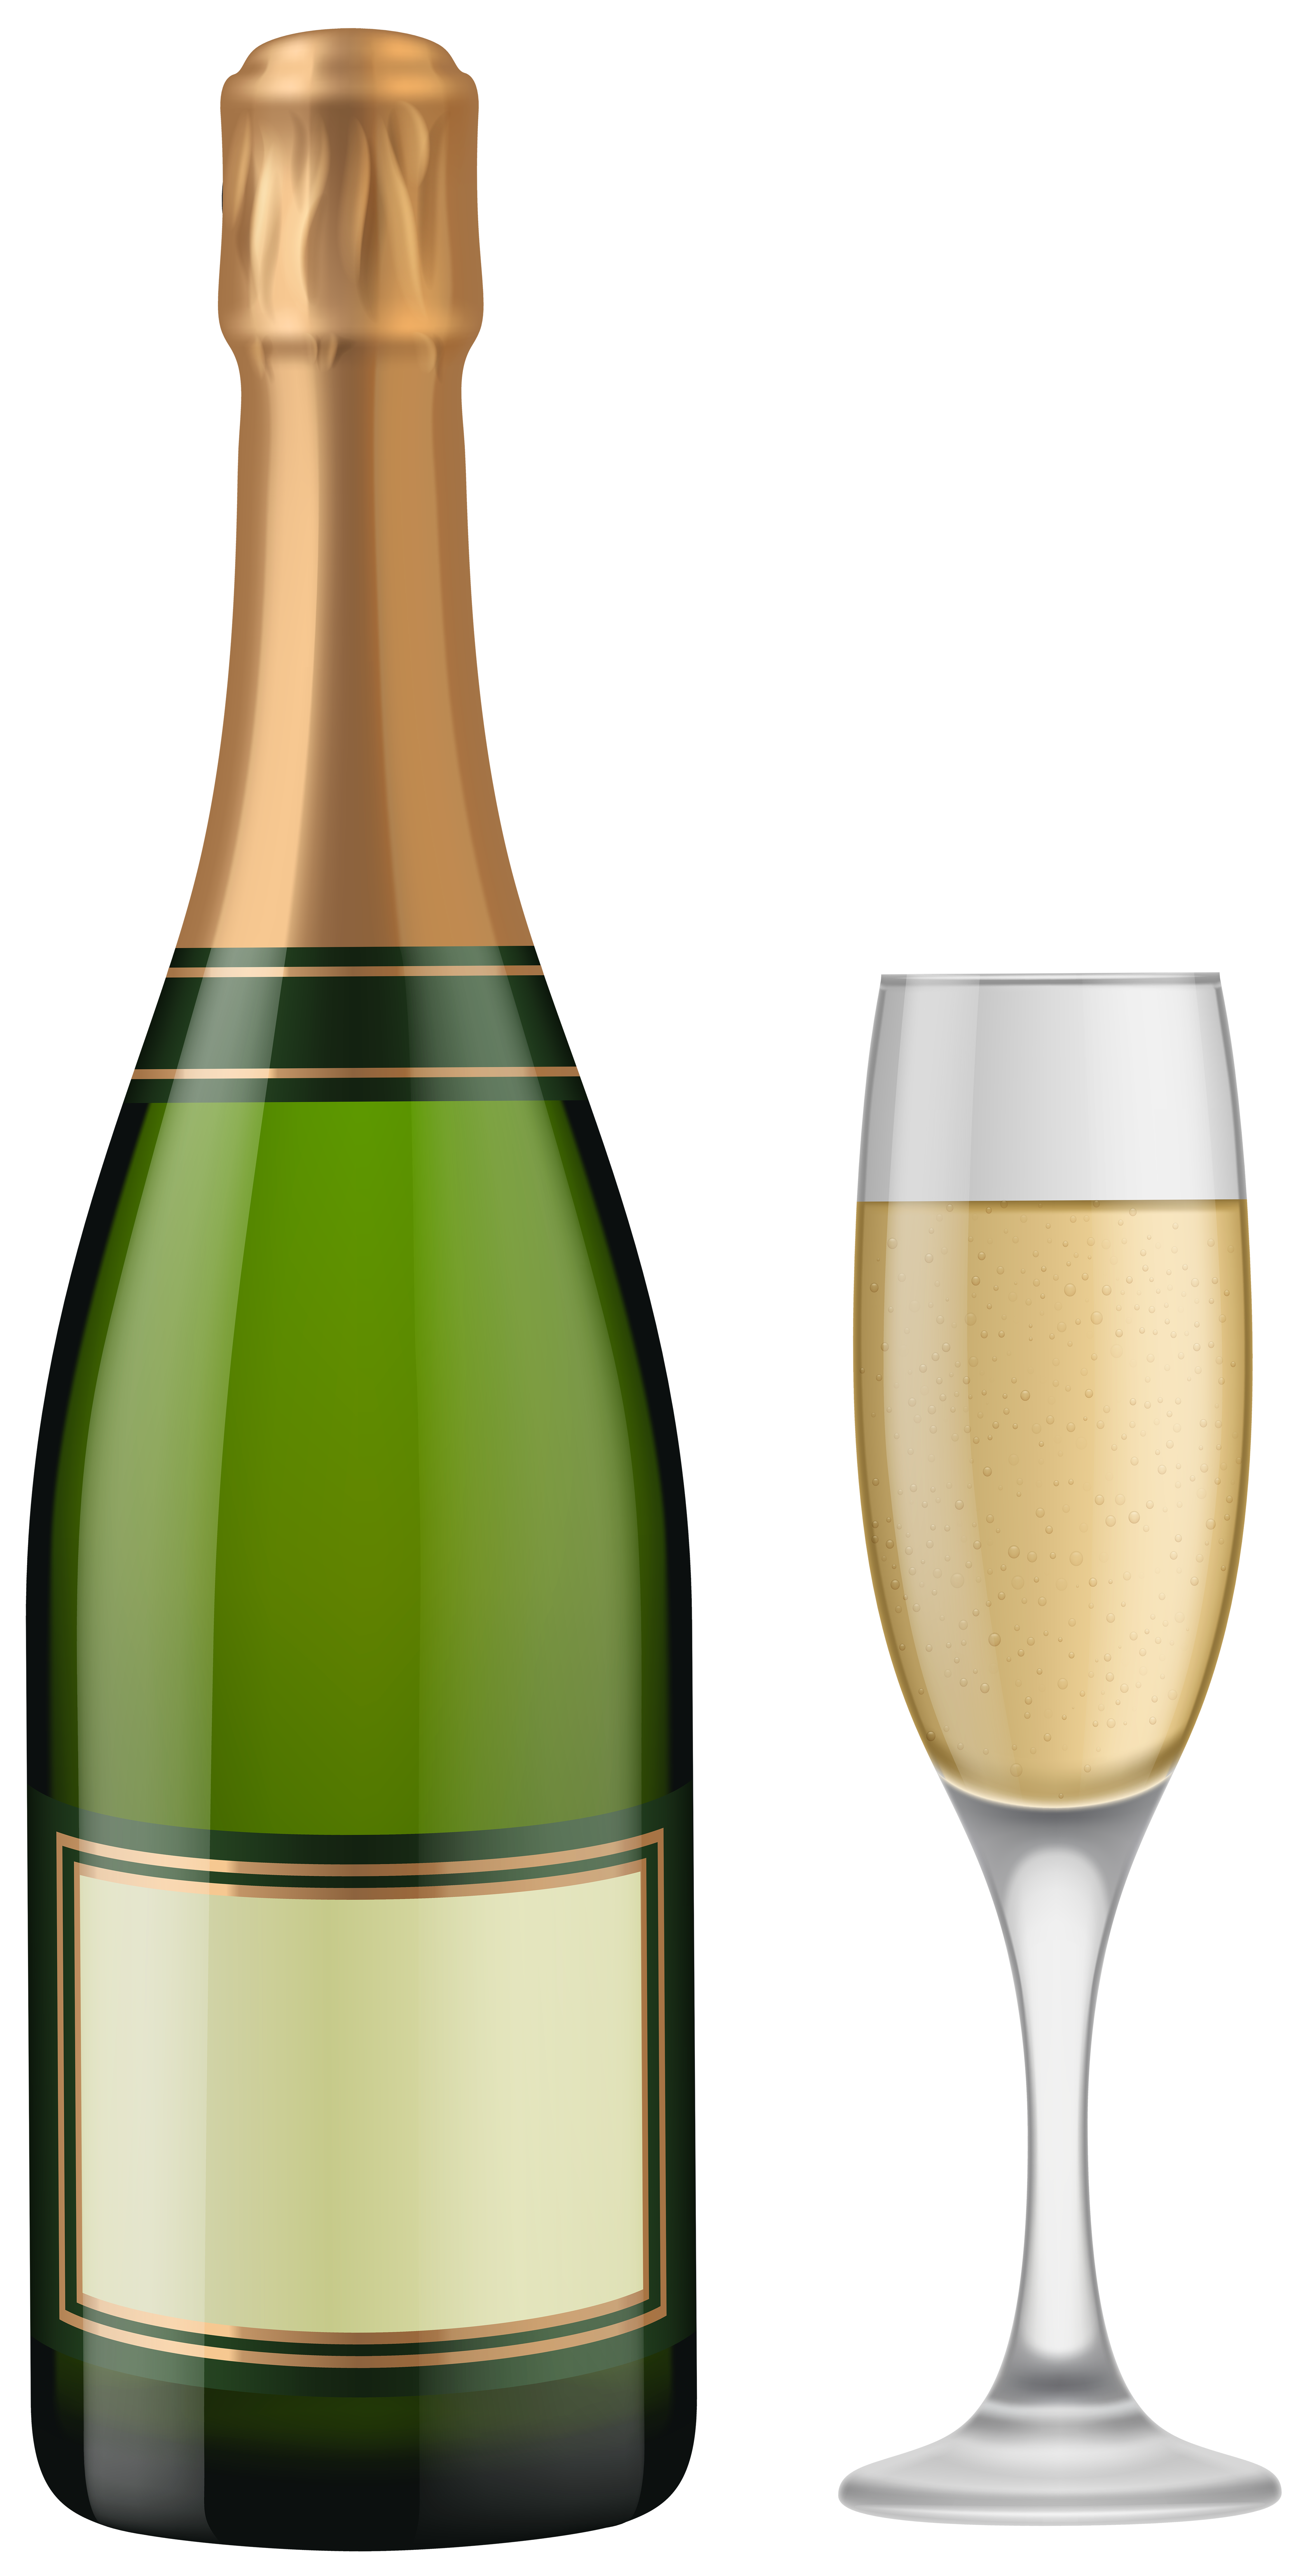 Champagne clipart free download clipart freeuse library Champagne clipart png clipart images gallery for free download ... clipart freeuse library